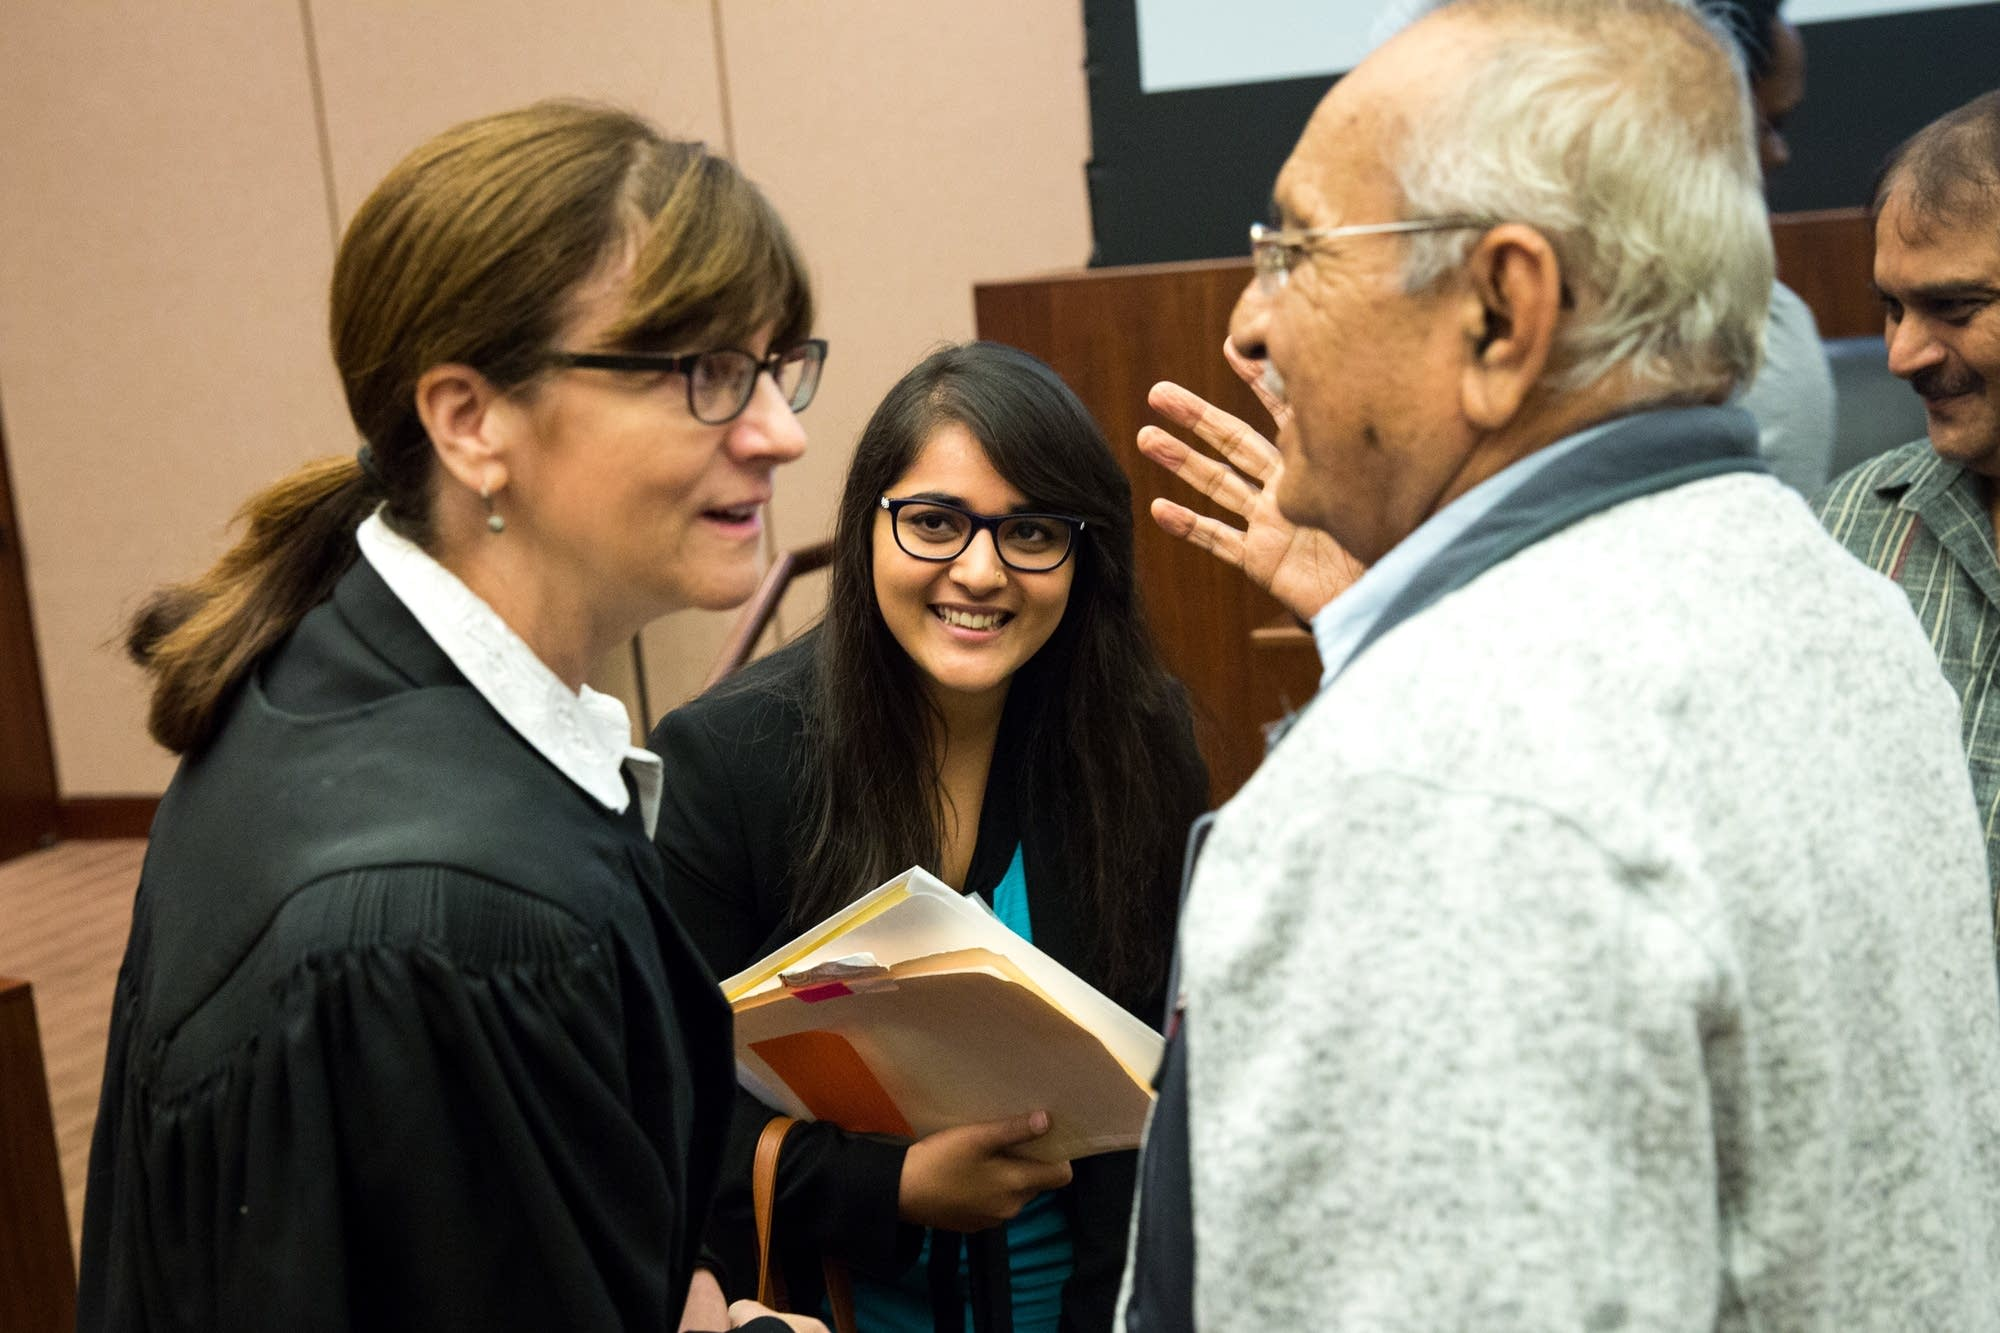 Judge Becky Thorson socializes after the ceremony.